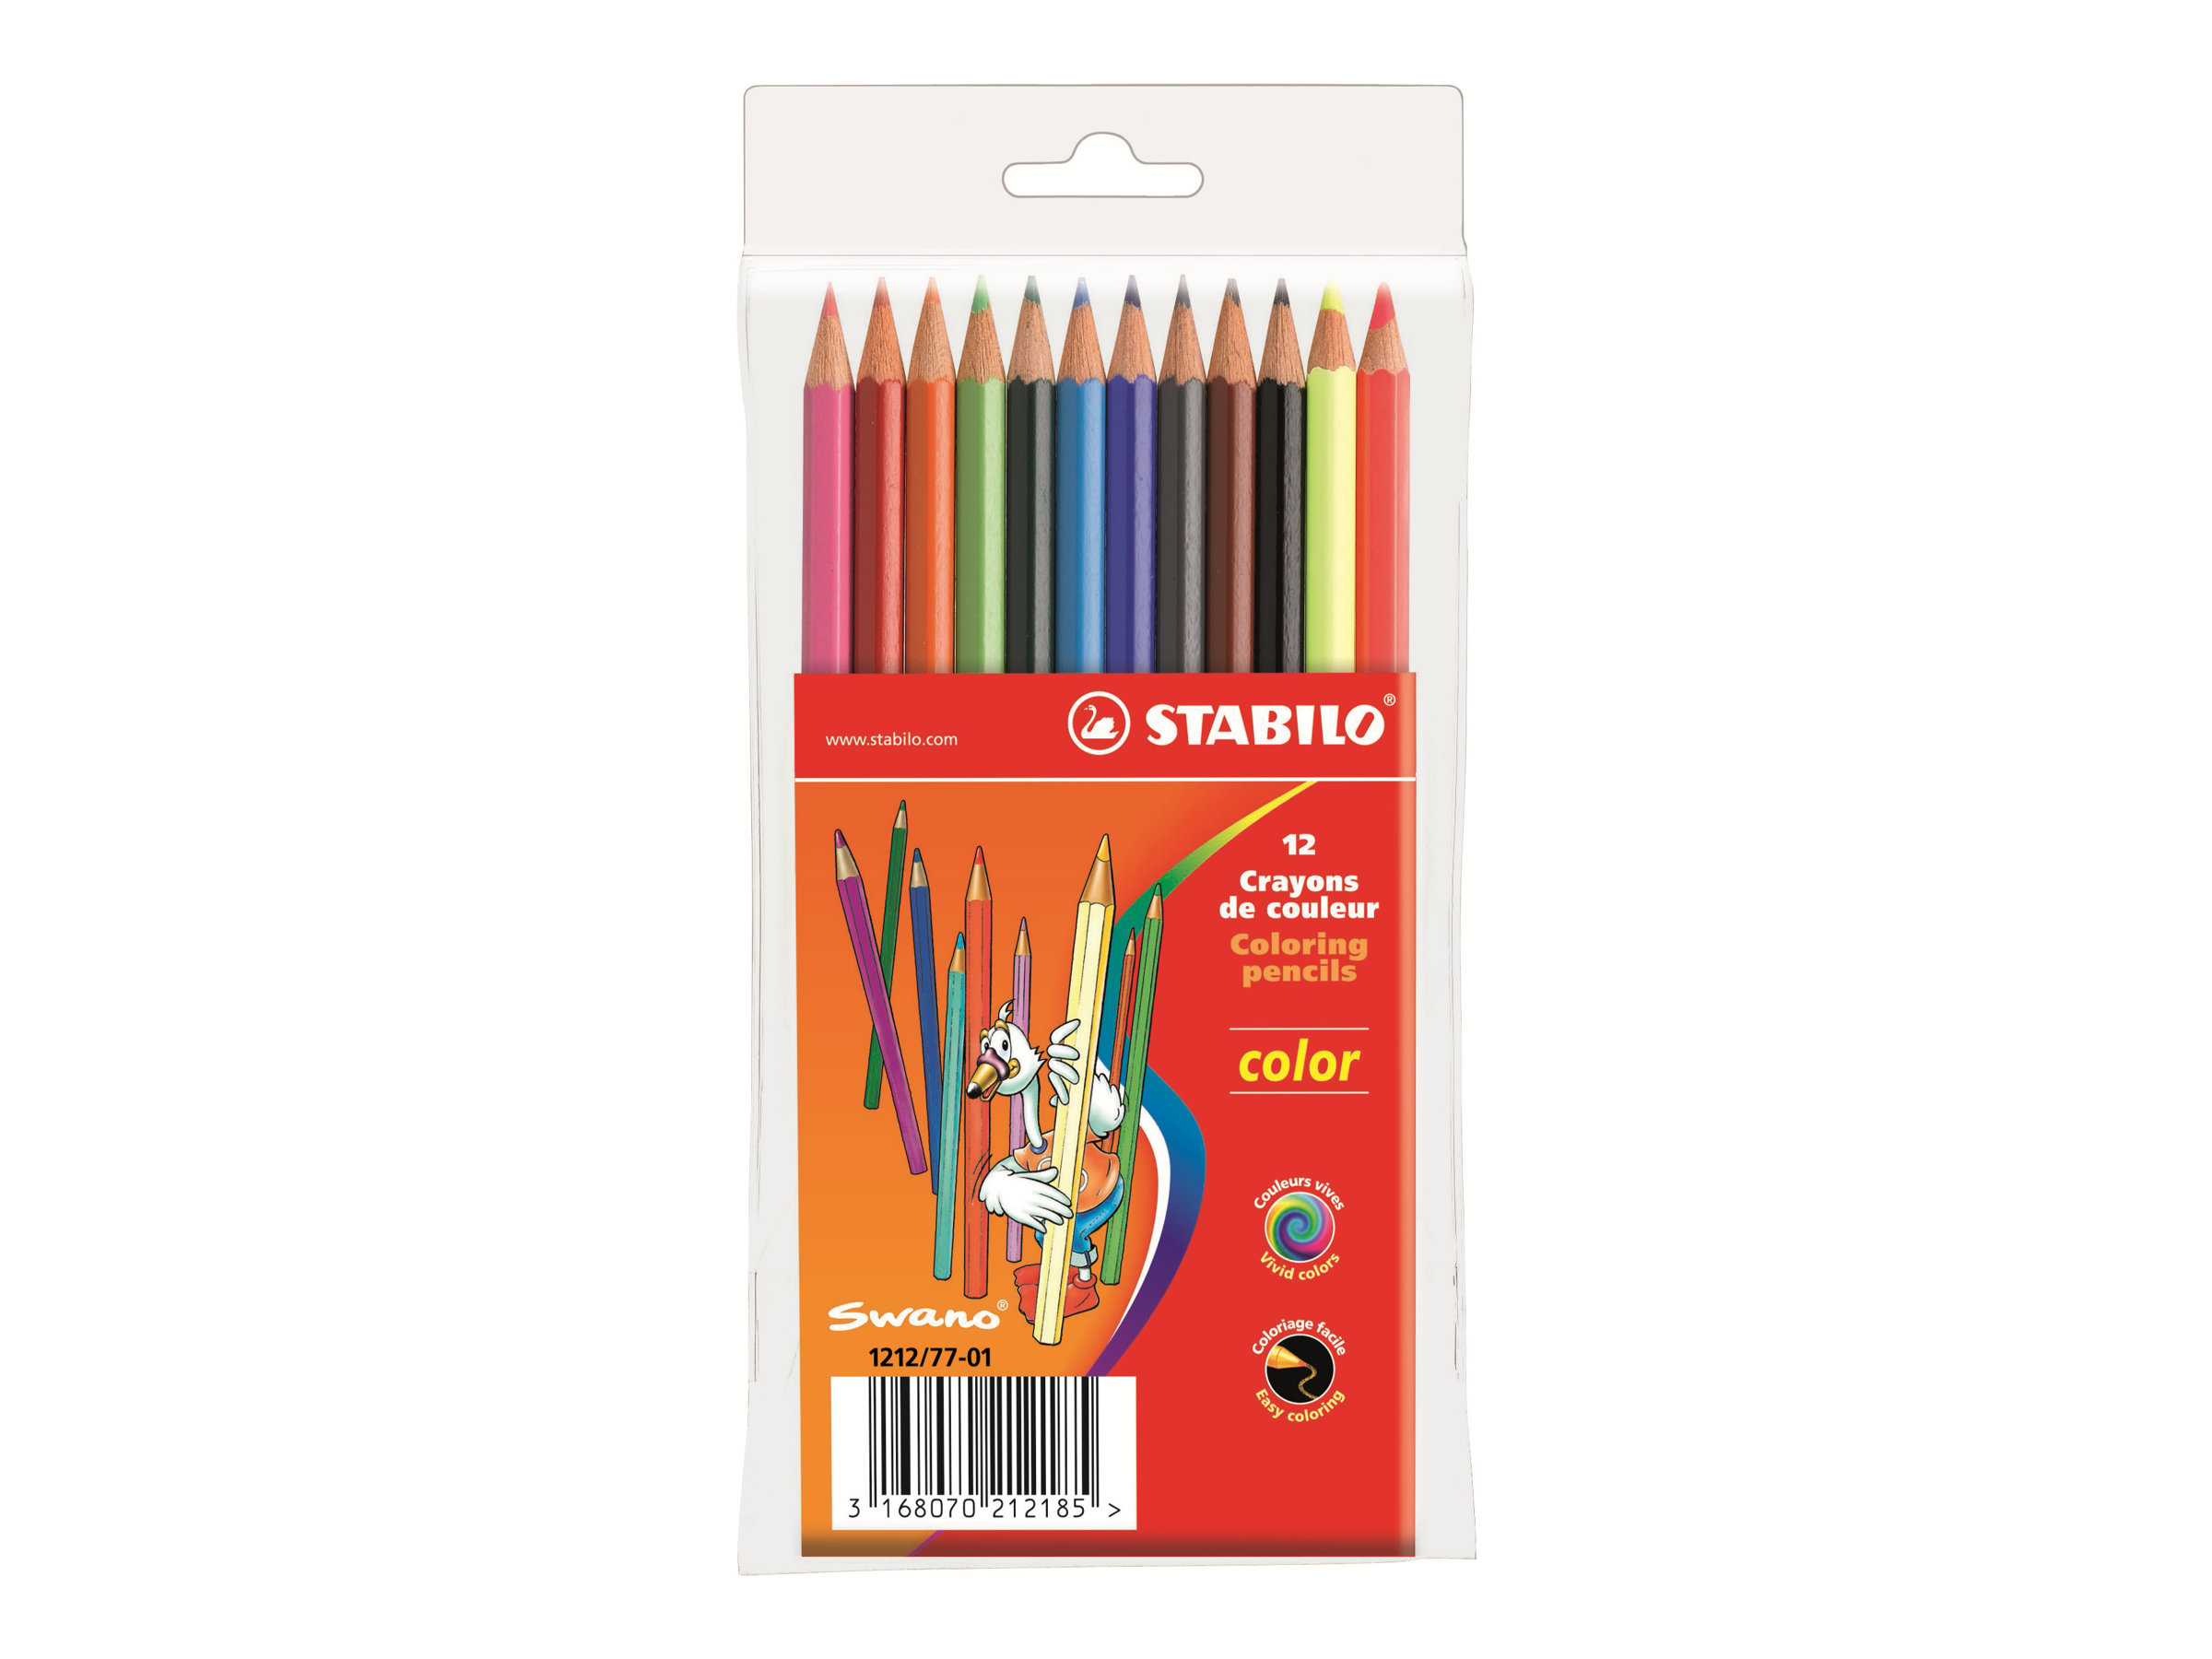 Stabilo color - 12 Crayon de couleurs - couleurs assorties - 2.5 mm